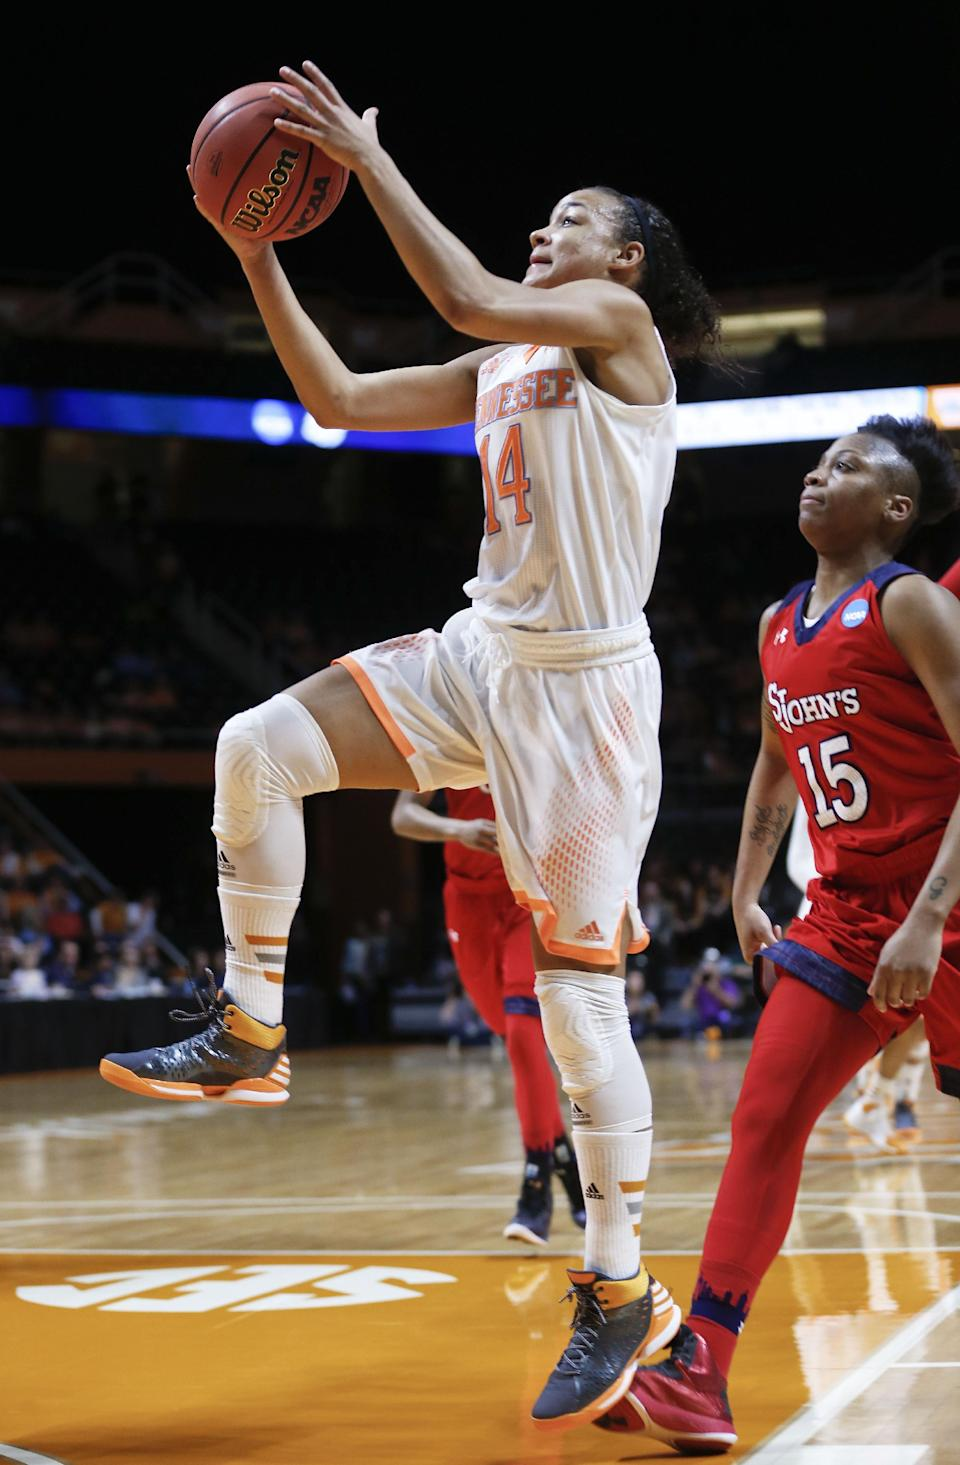 Tennessee guard Andraya Carter (14) drives ahead of St. John's guard Danaejah Grant (15) in the first half of an NCAA women's college basketball second-round tournament game Monday, March 24, 2014, in Knoxville, Tenn. (AP Photo/John Bazemore)